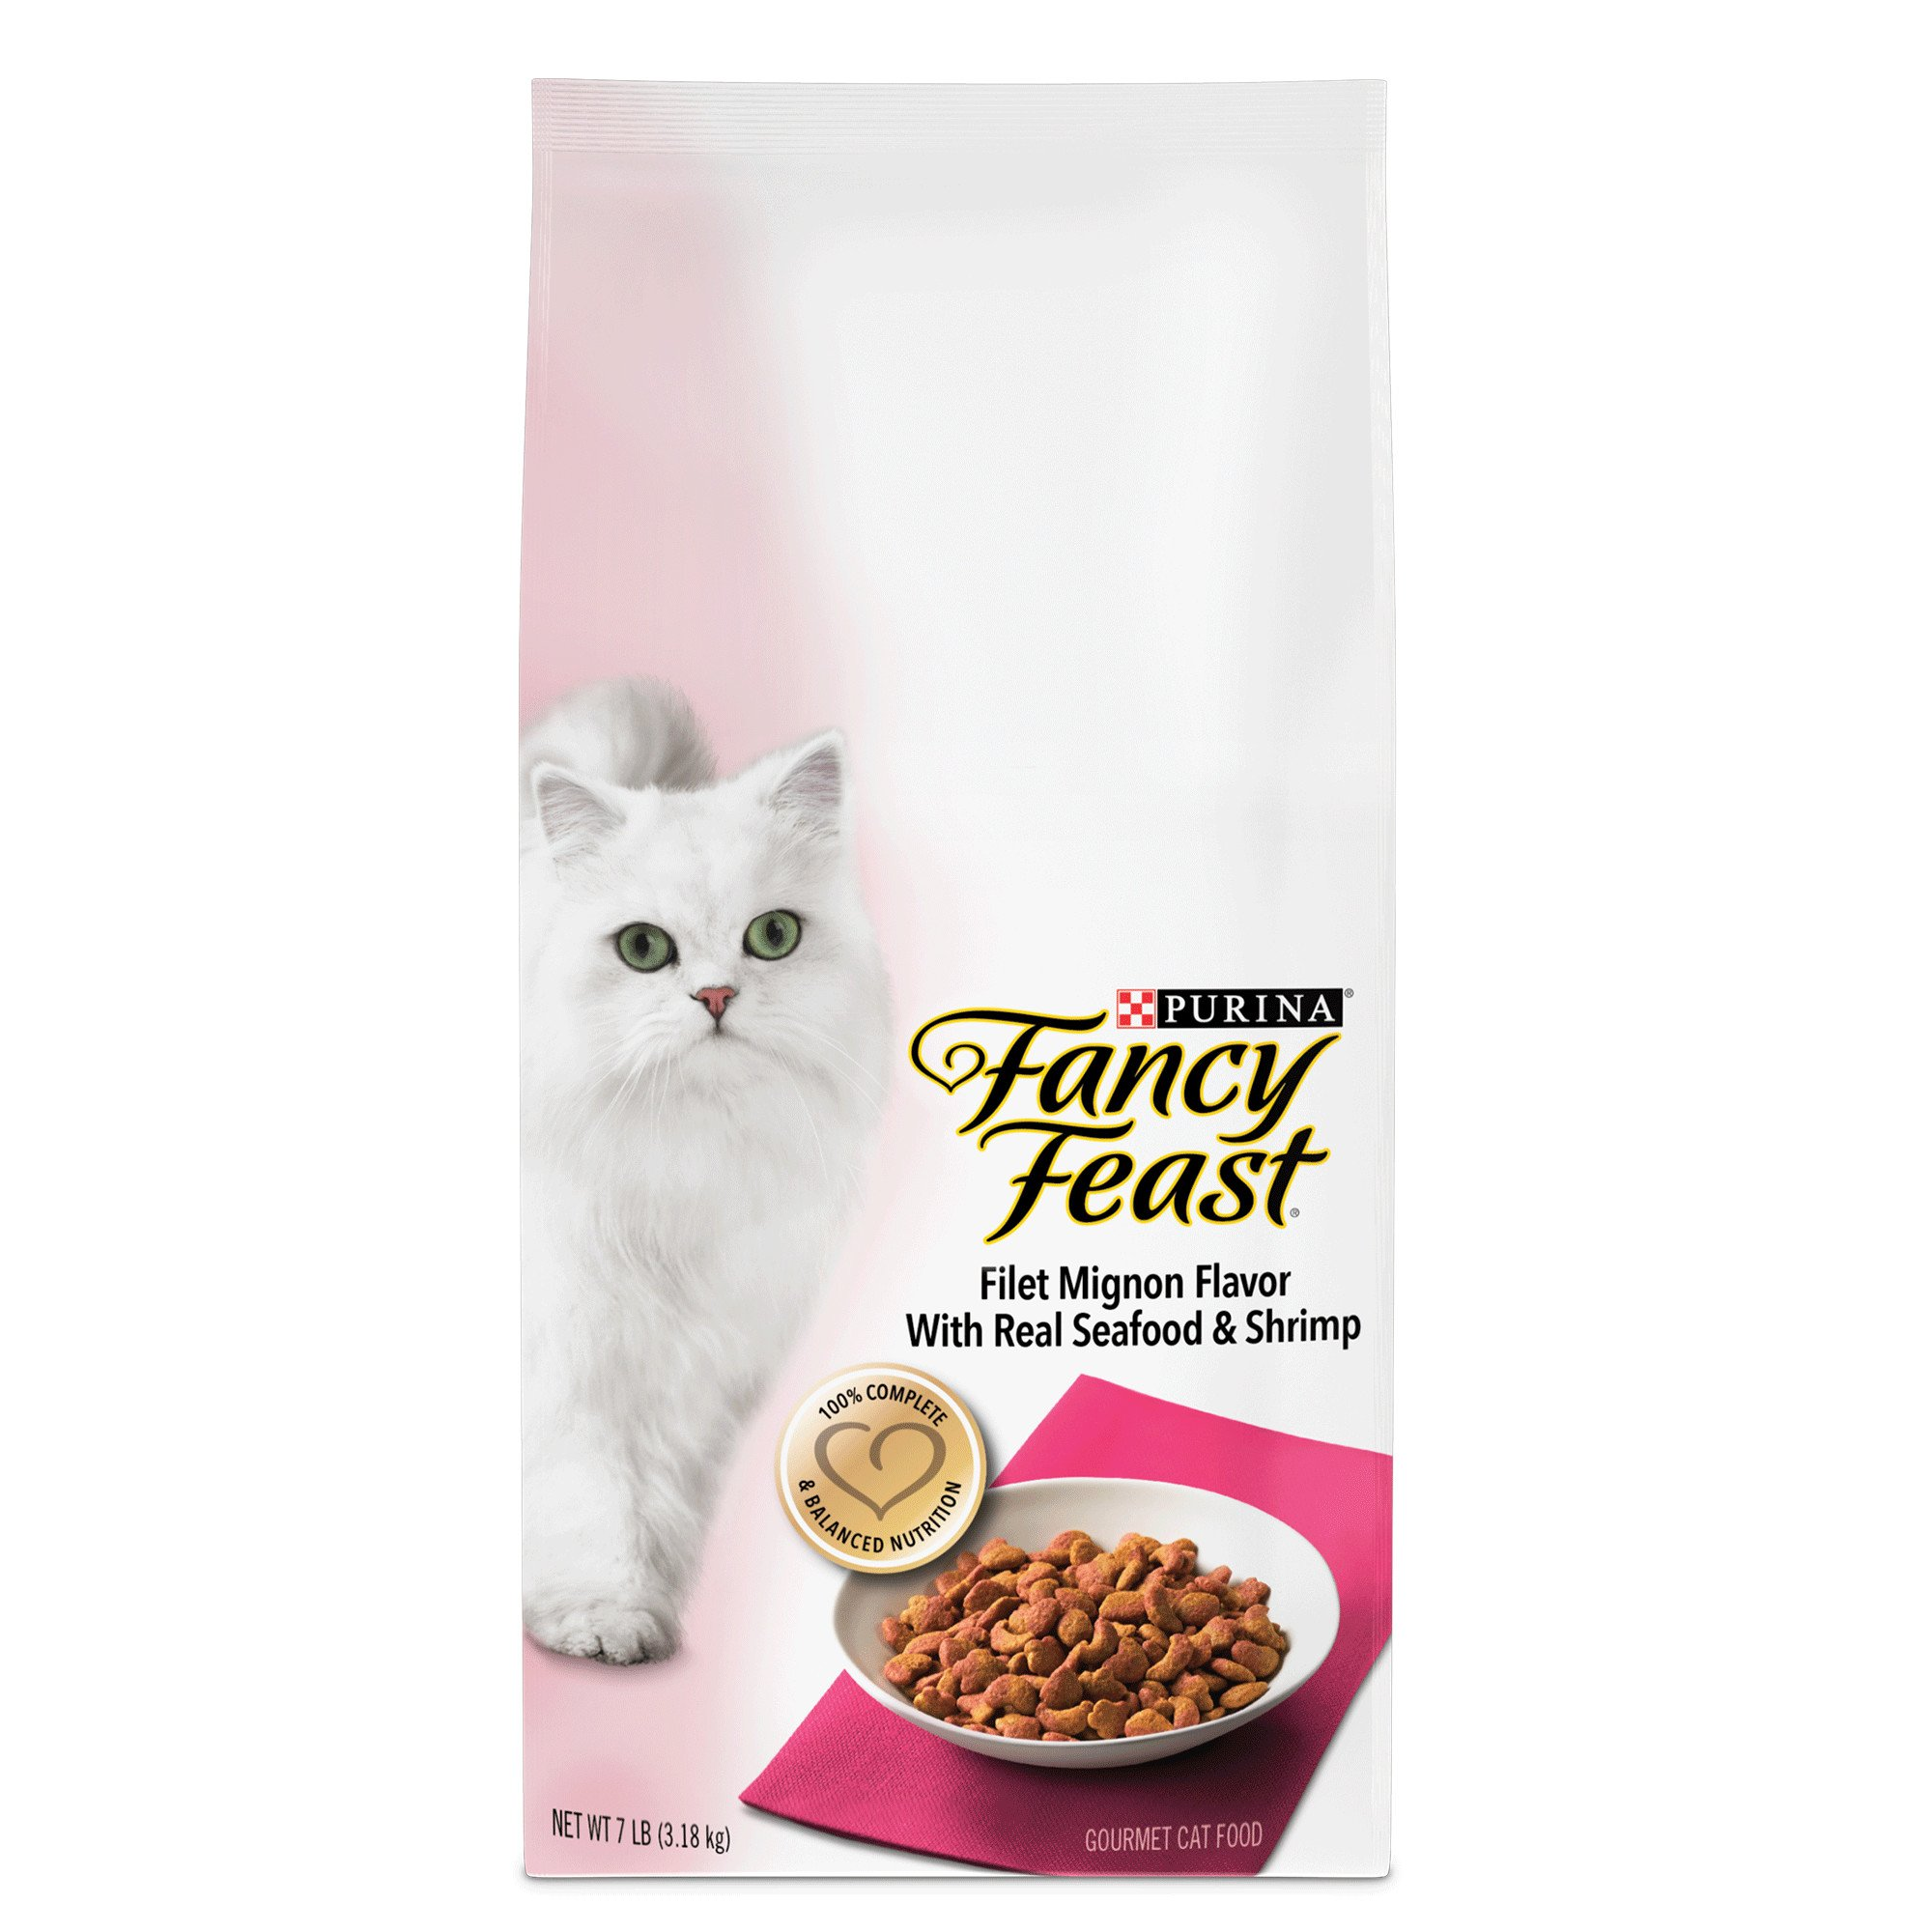 Fancy Feast Gourmet Gold Filet Mignon Flavor with Real Seafood & Shrimp Dry Cat Food